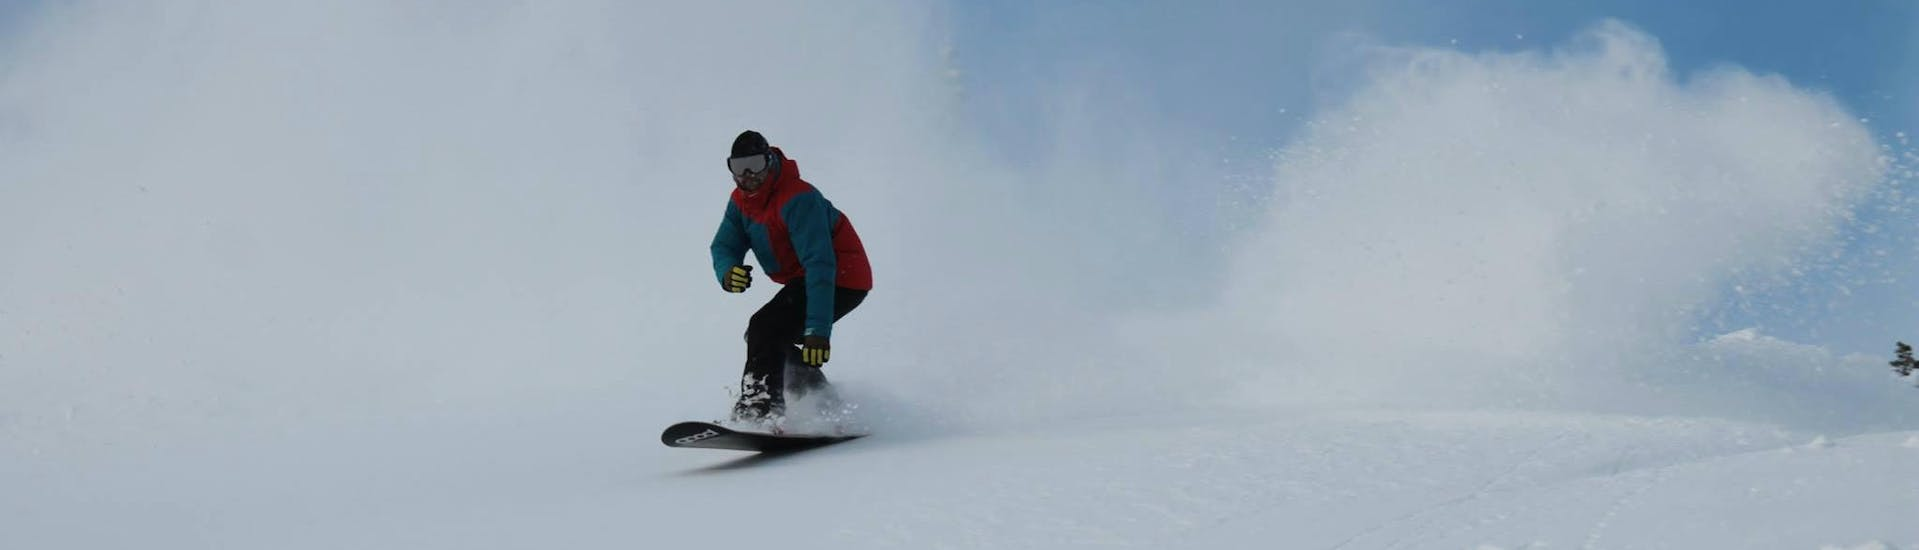 Snowboarding Lessons for Advanced Boarders with BoardStars Snowboardschule Schladming - Hero image